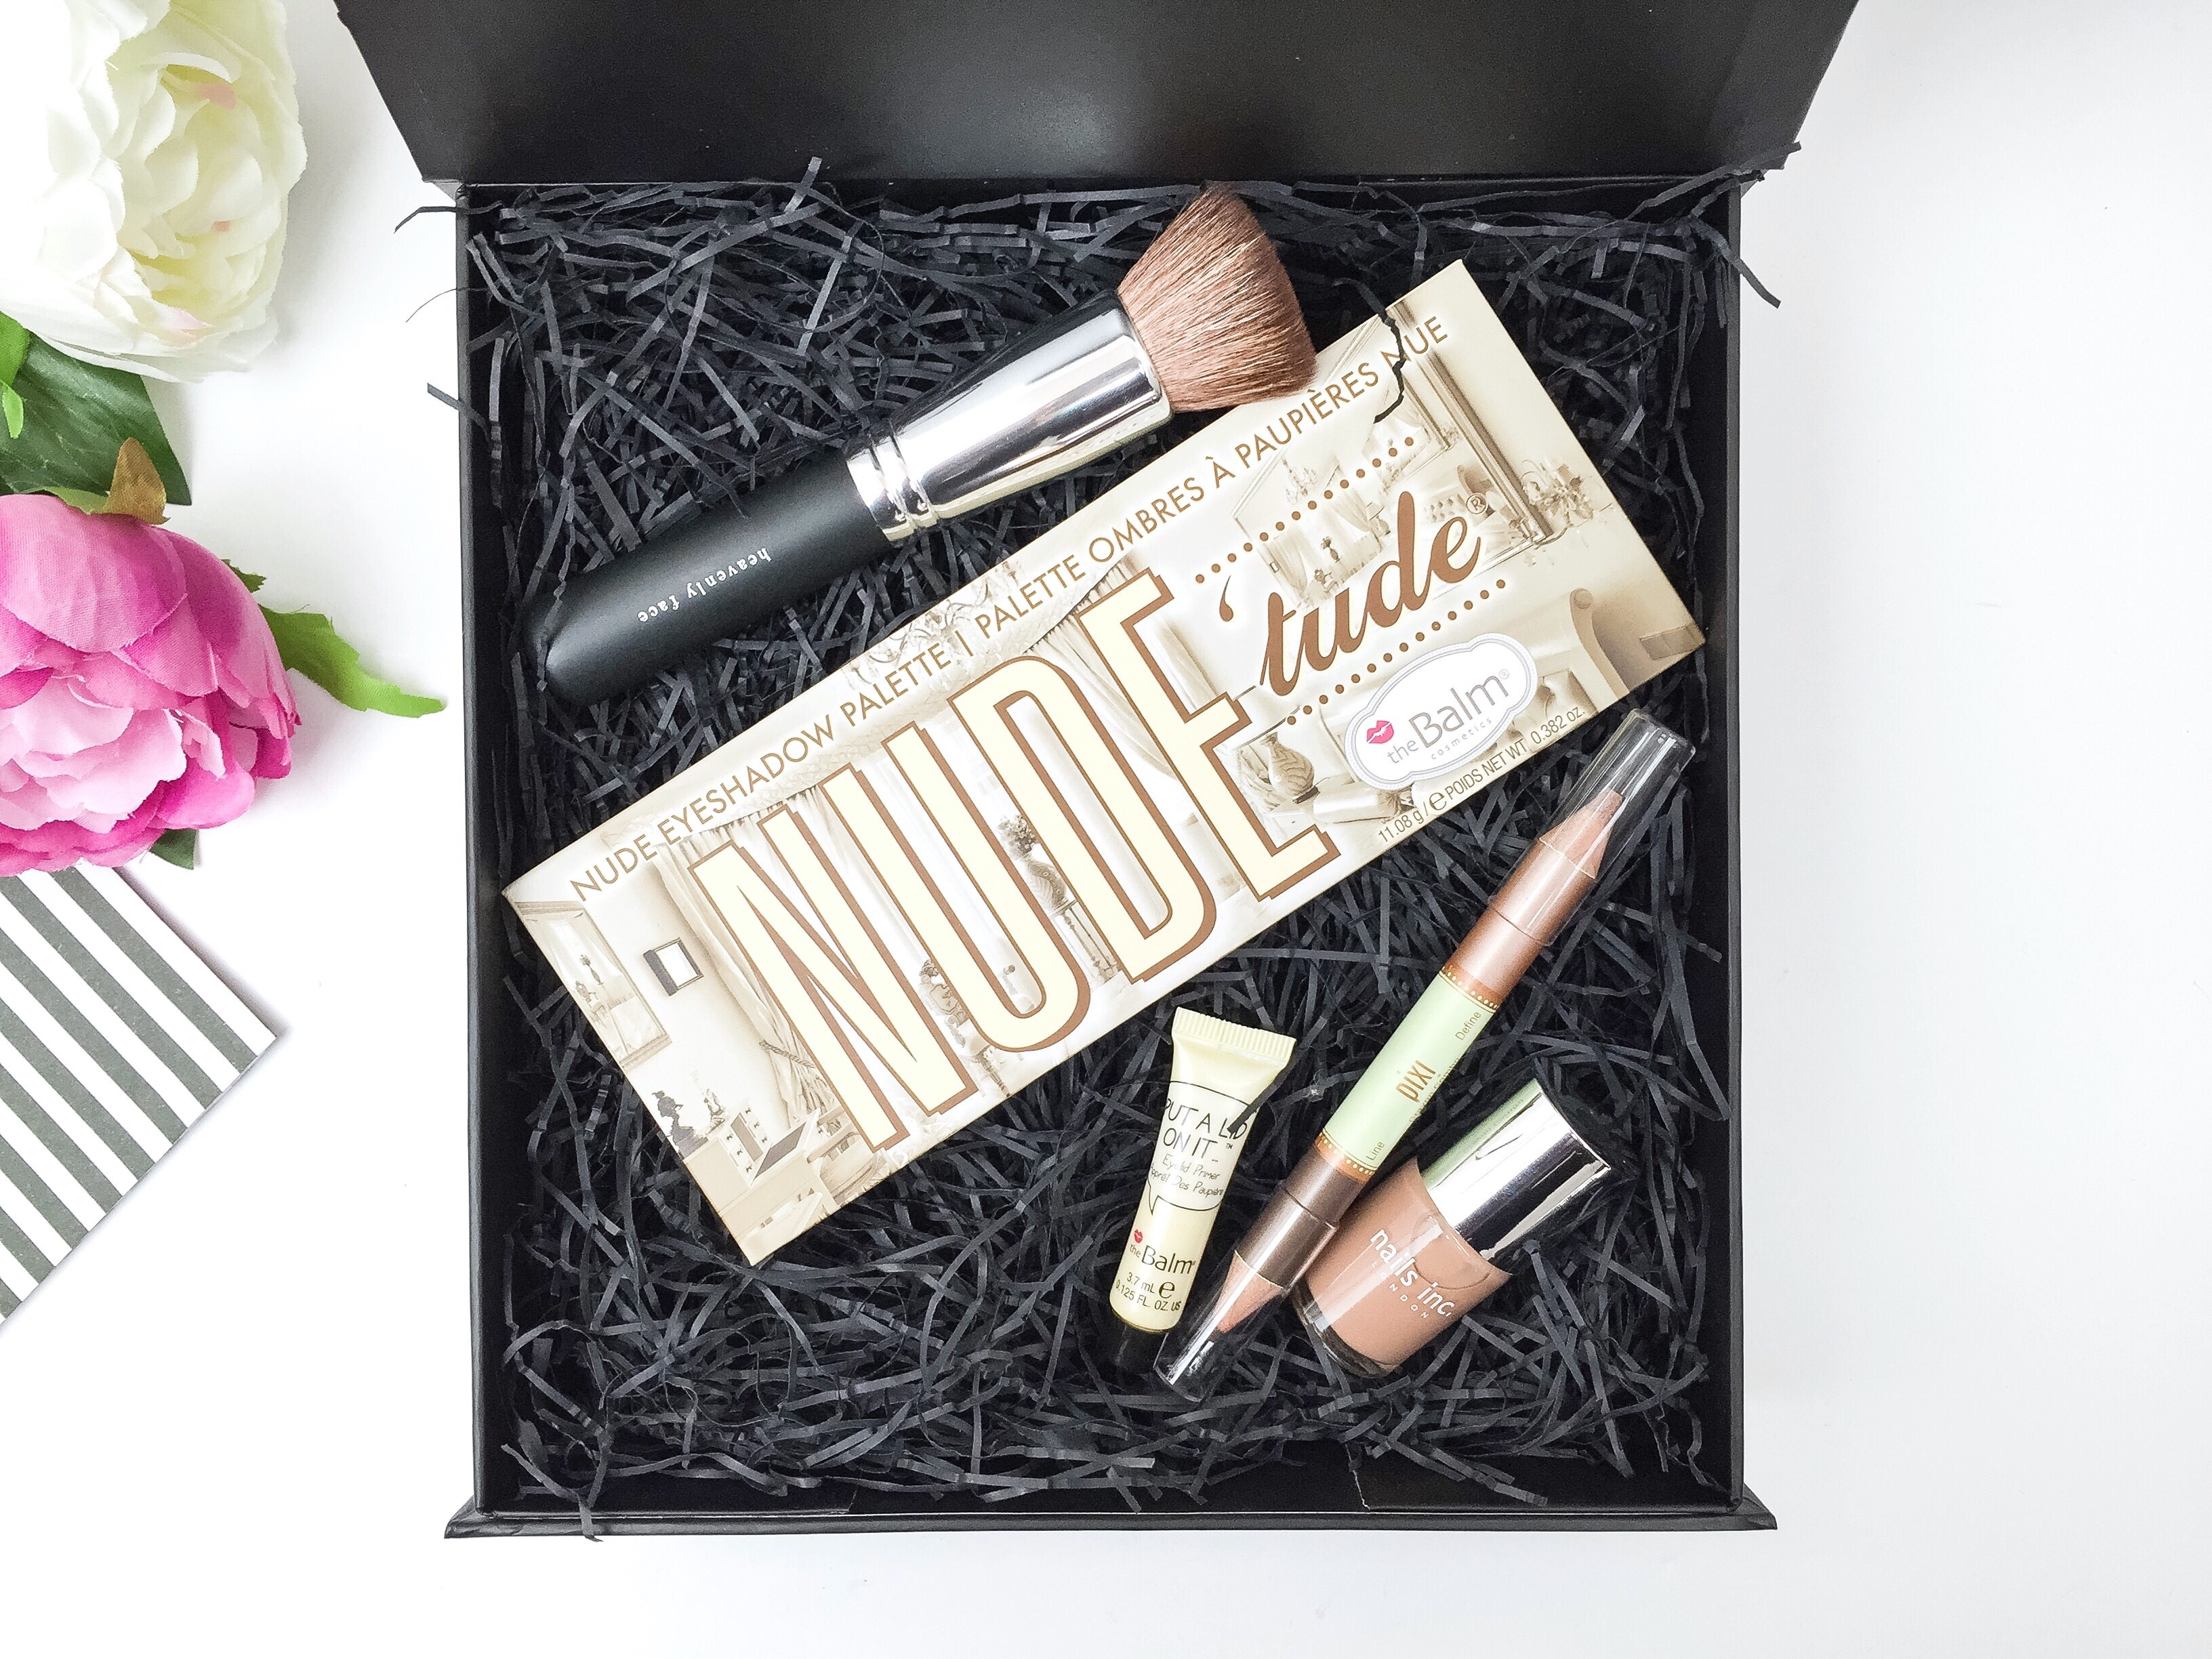 Cohorted Beauty Box – March 2016. Price of the box – £35.00 plus free postage. No. of Products in the Box – 5 items (worth £88.50) www.cohorted.co.uk